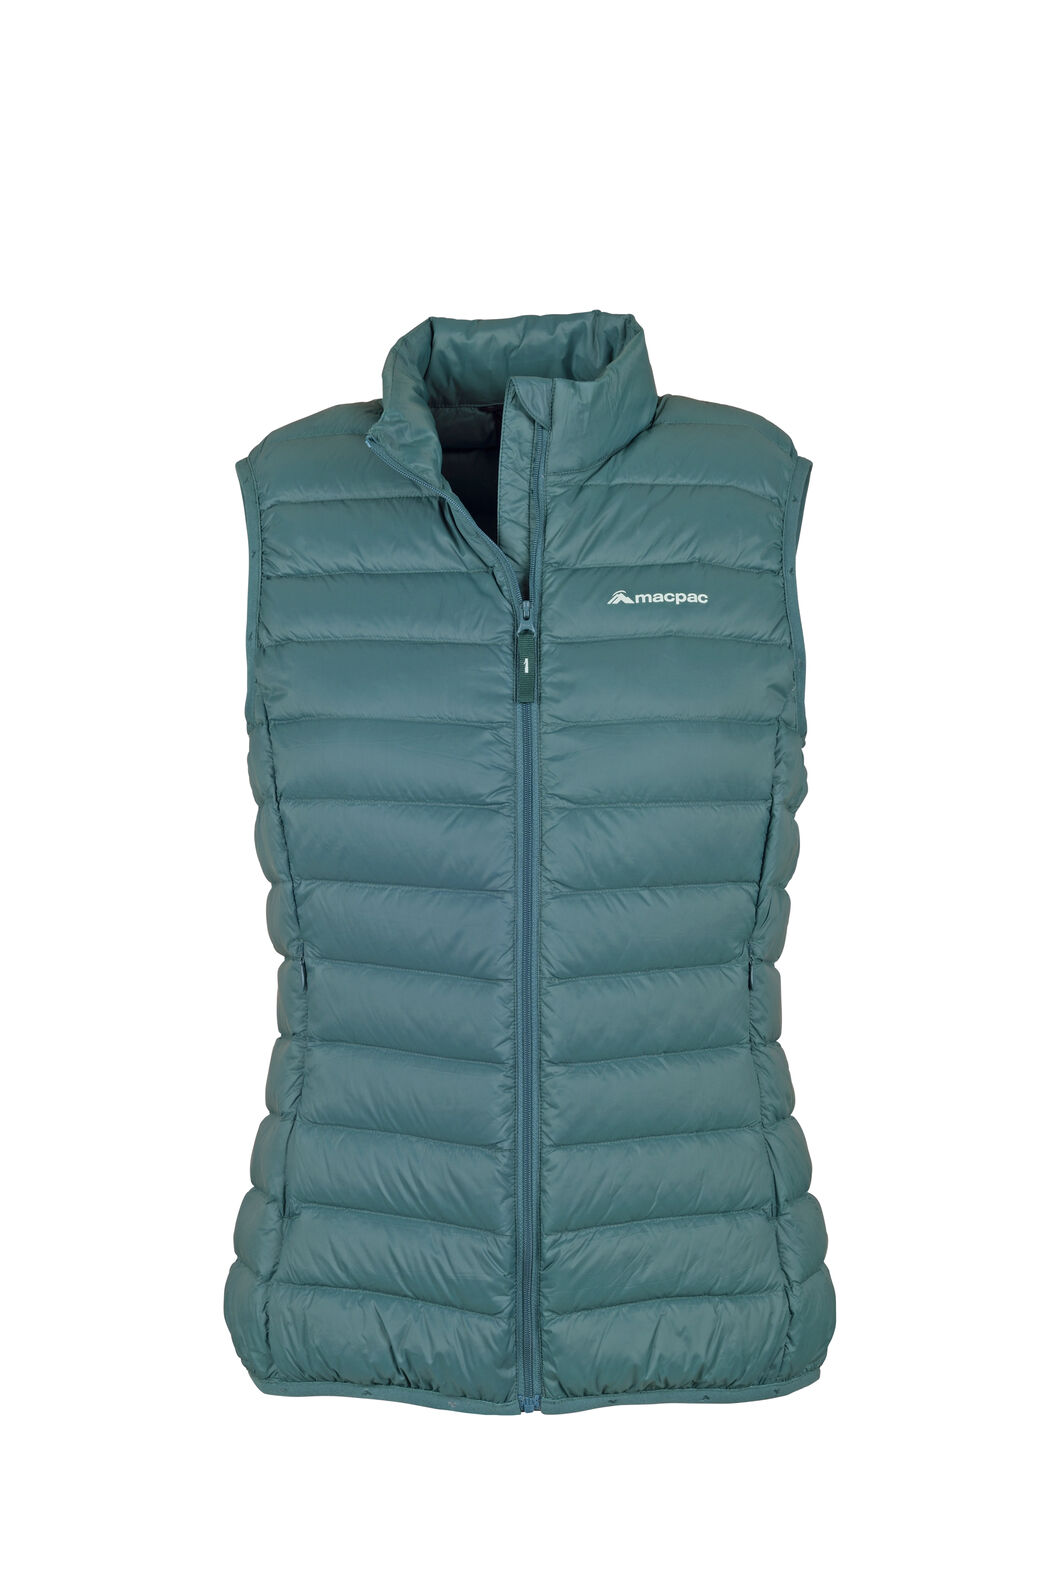 Macpac Uber Light Down Vest - Women's, Bayberry, hi-res